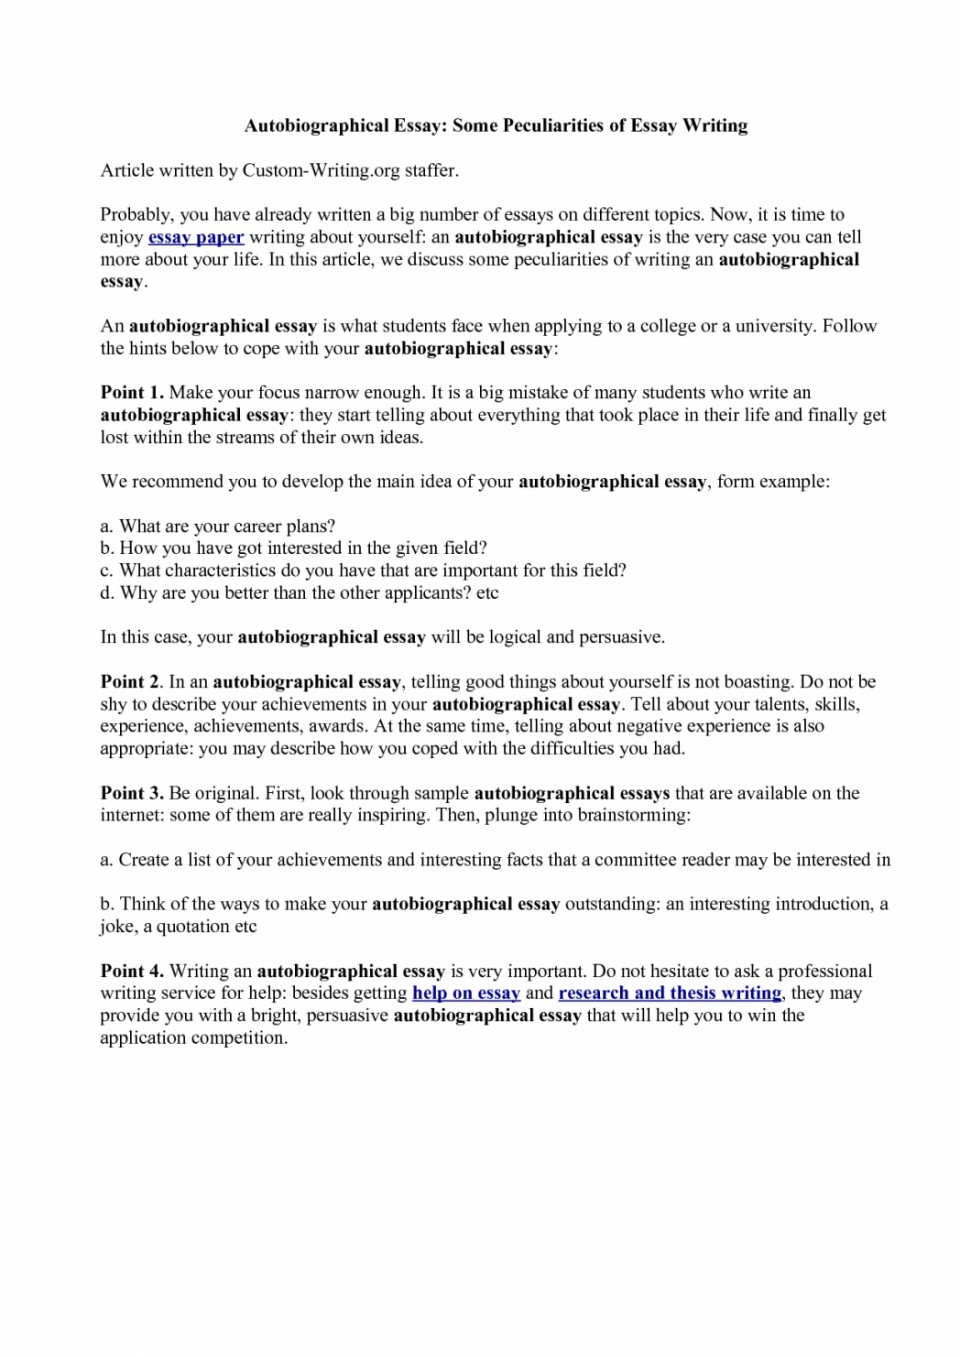 005 How To Start Autobiography Essay Example Of Telling About Yourself Shawn Weatherly Writing An Luxury Write Autobiographical For Job Written Graduate School Outline Singular Annotated Bibliography Examples A Good Scholarship 960